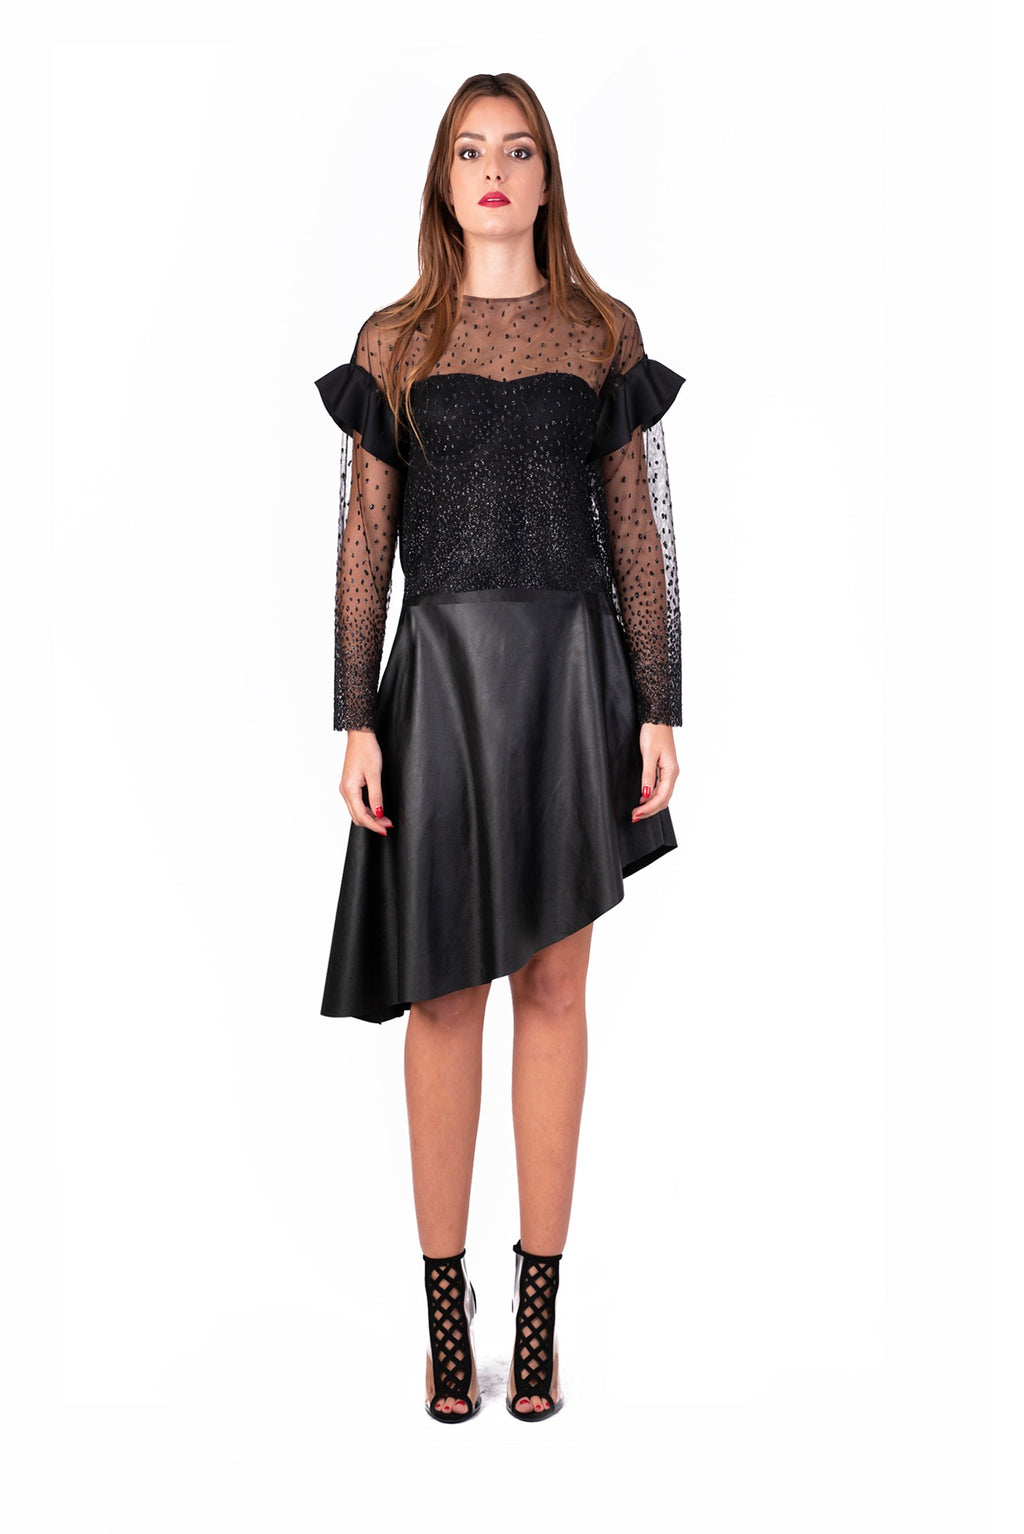 Sparkling sheer mesh top with ruffle sleeves